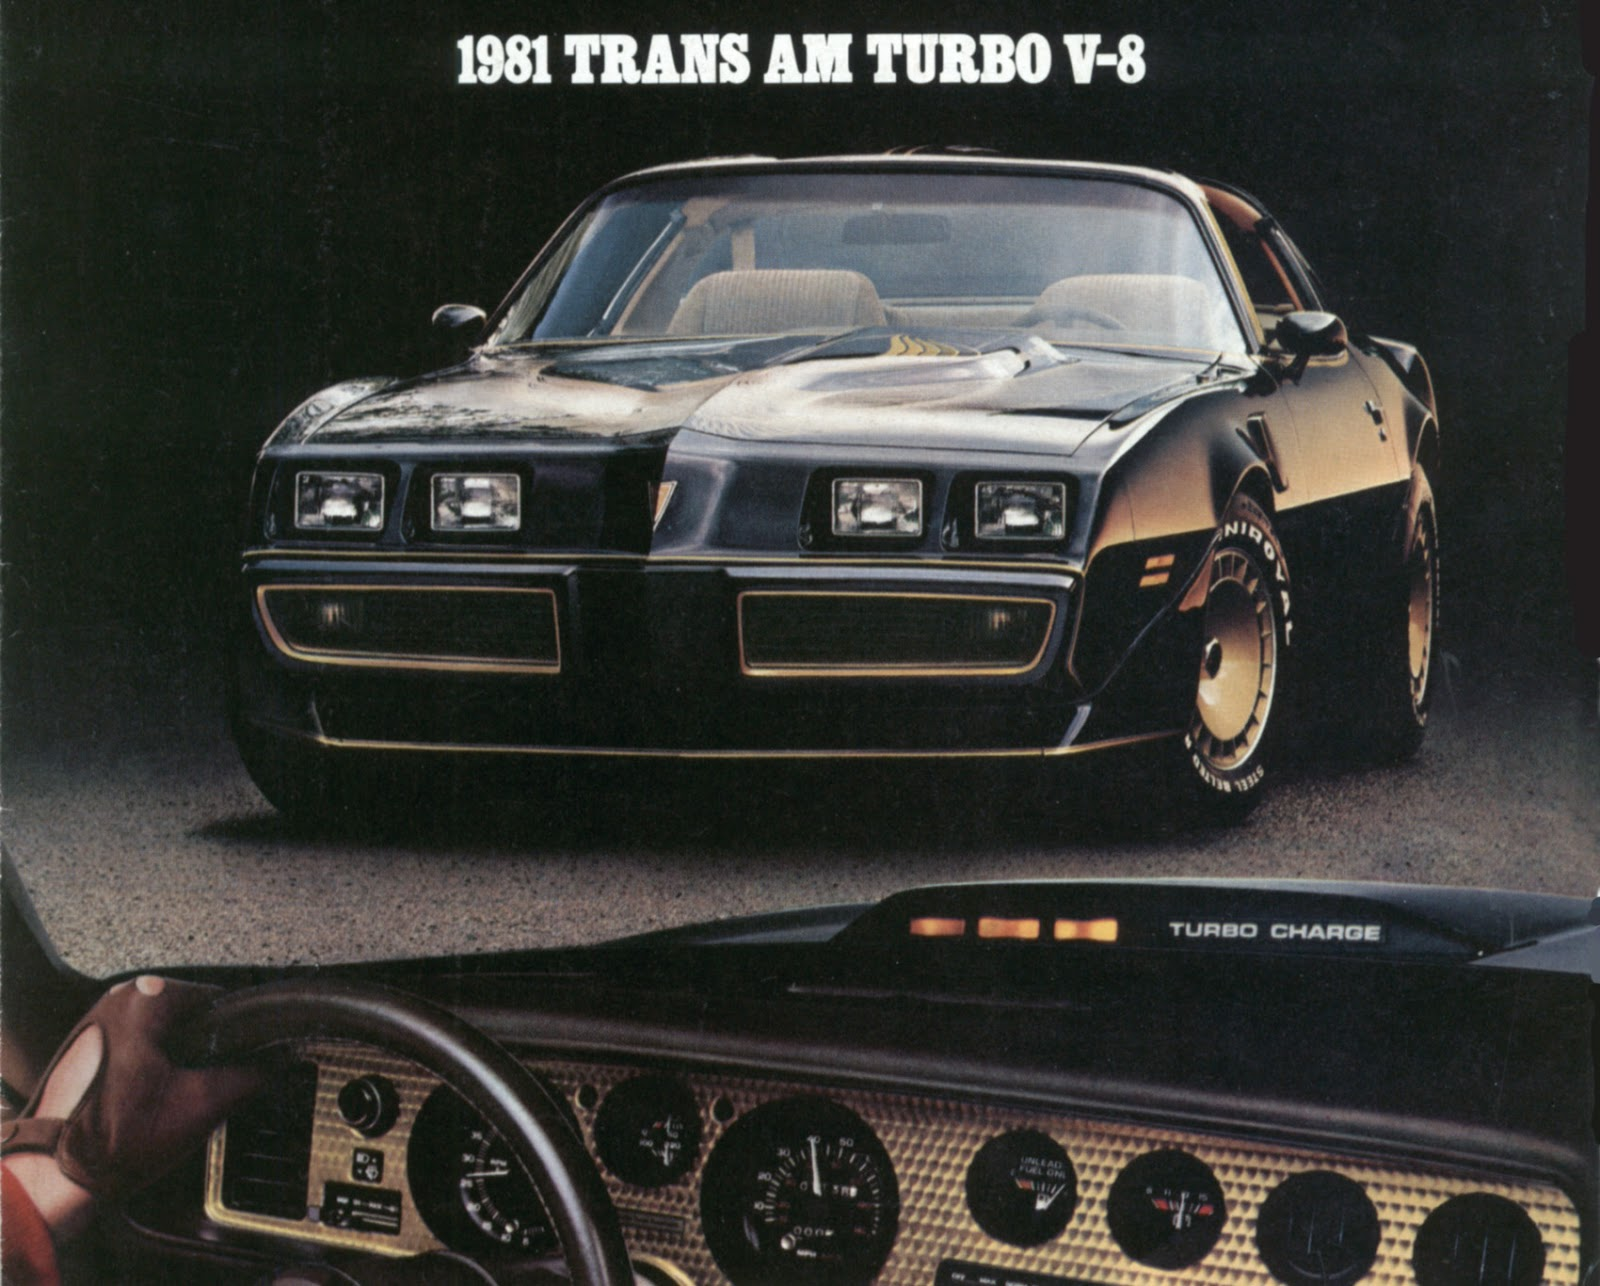 1980 1981 4 9 turbo trans am slacker or misunderstood underdog